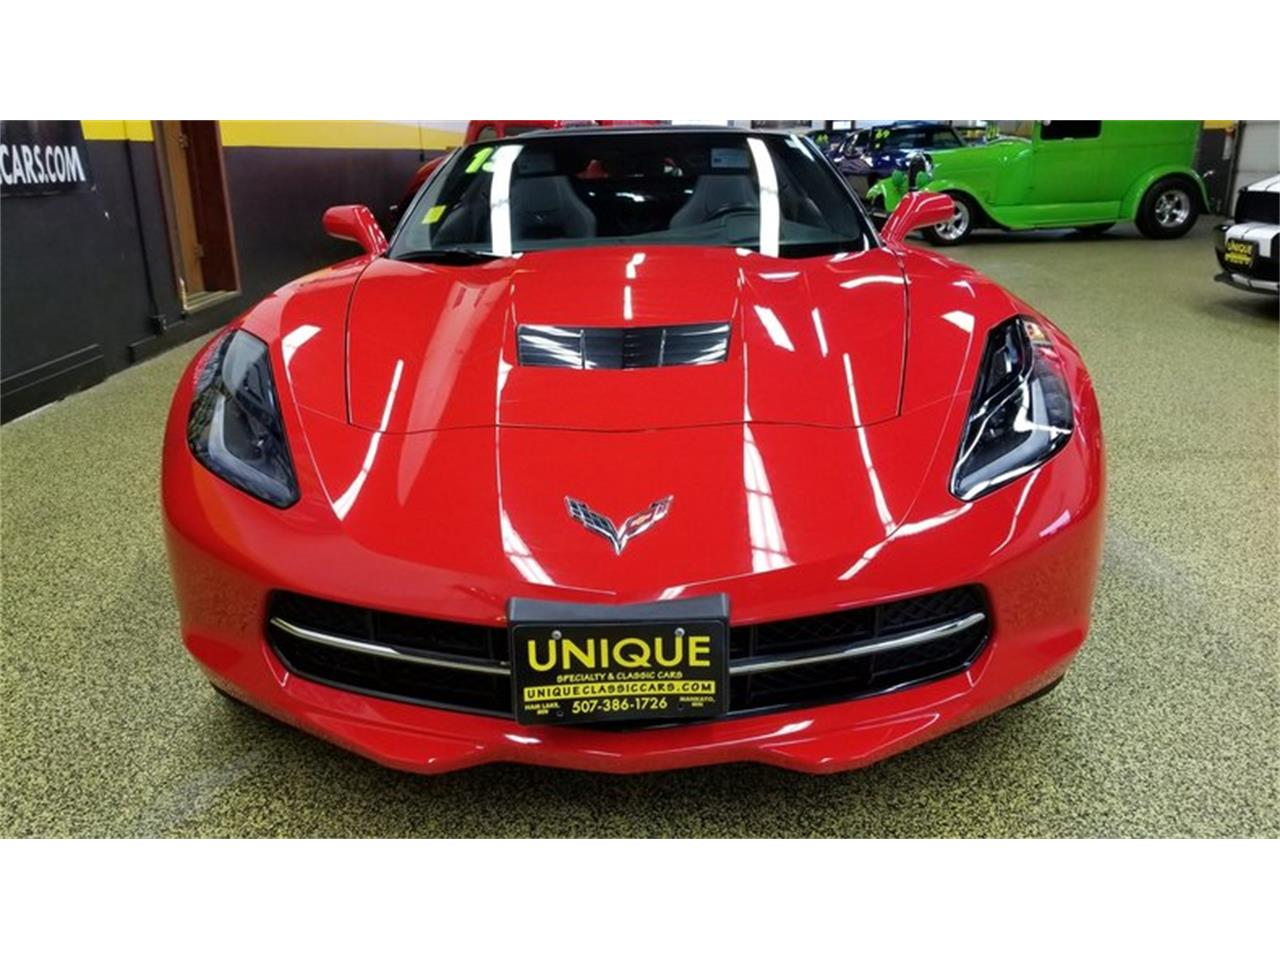 Large Picture of 2015 Chevrolet Corvette Coupe 3LT located in Minnesota - $48,900.00 - MEL0